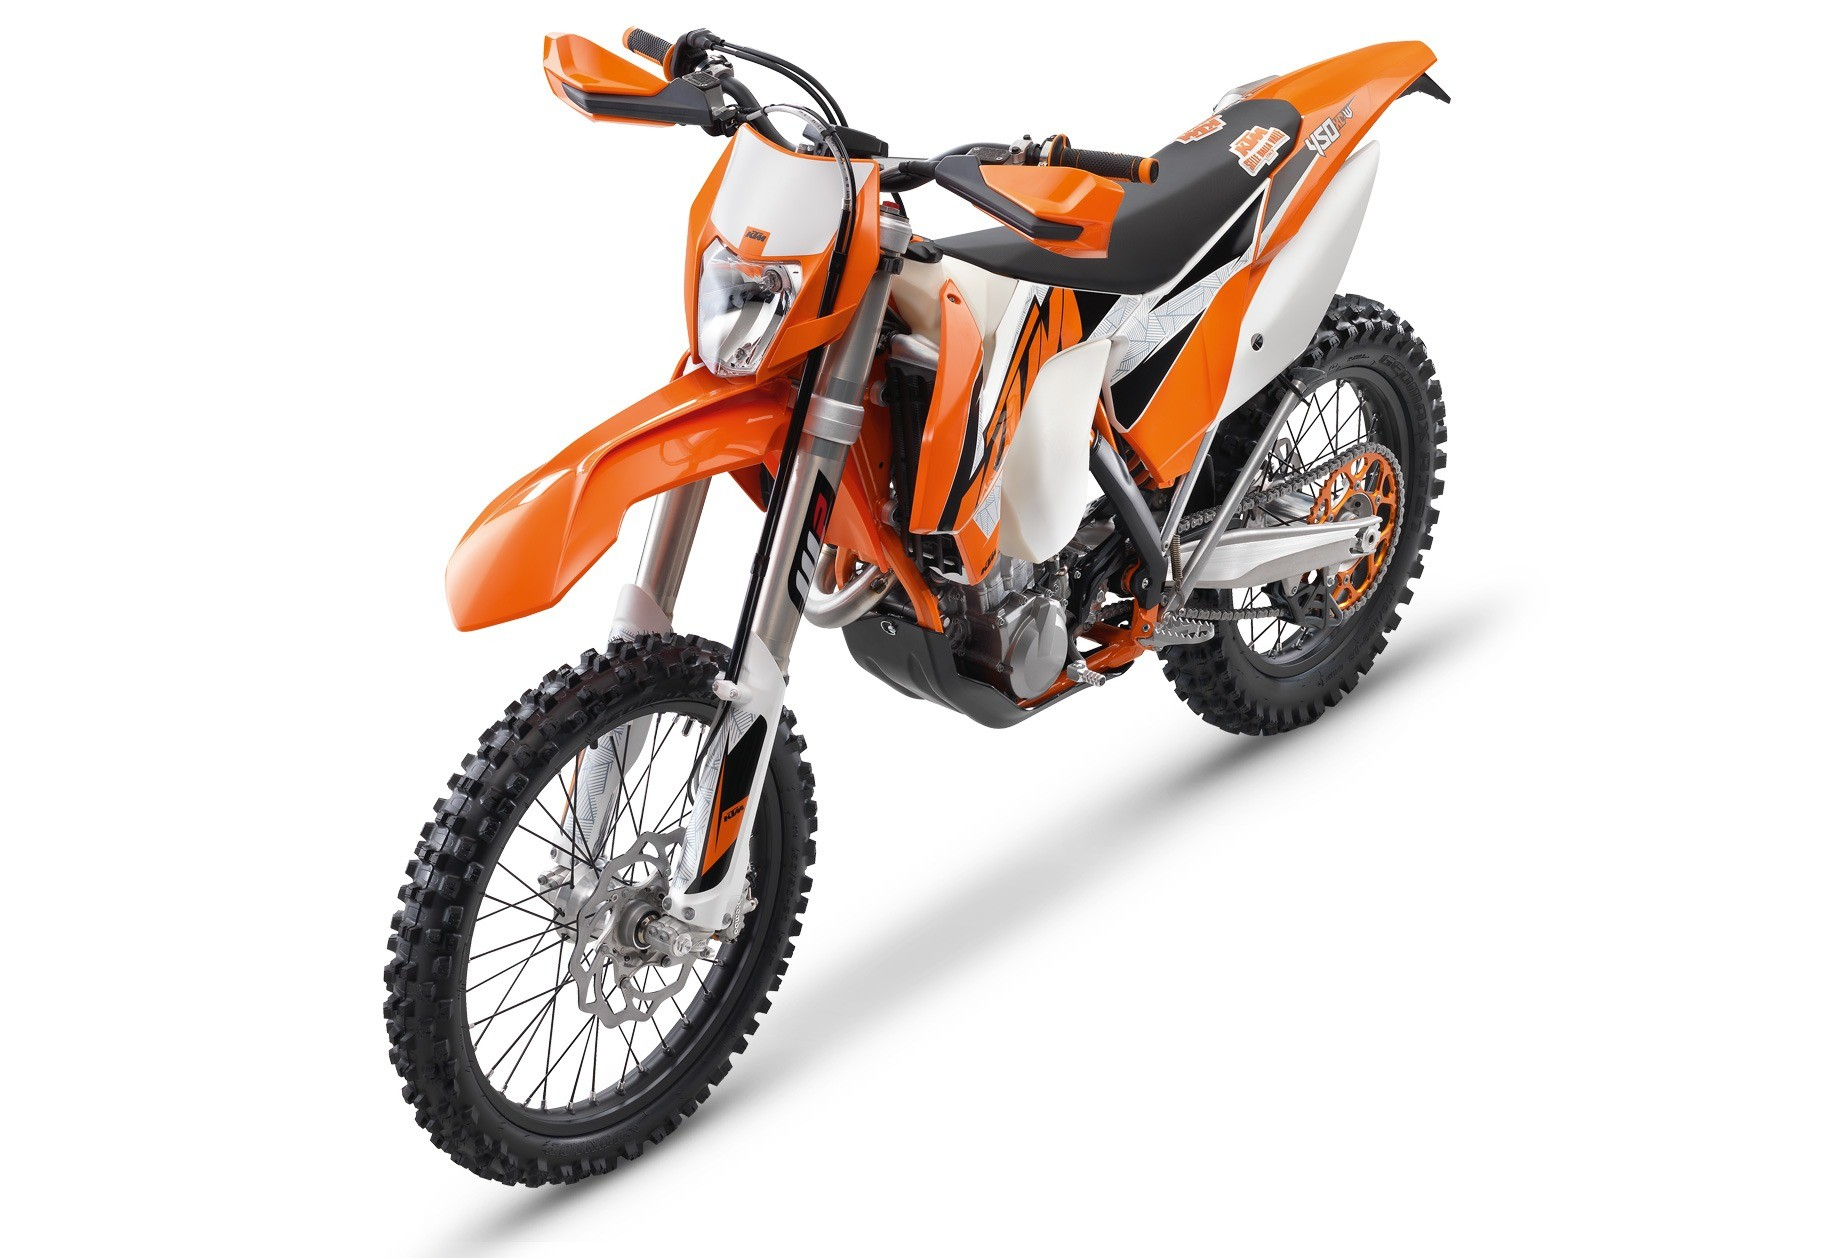 2016 KTM 450 XC-F in Costa Mesa, California